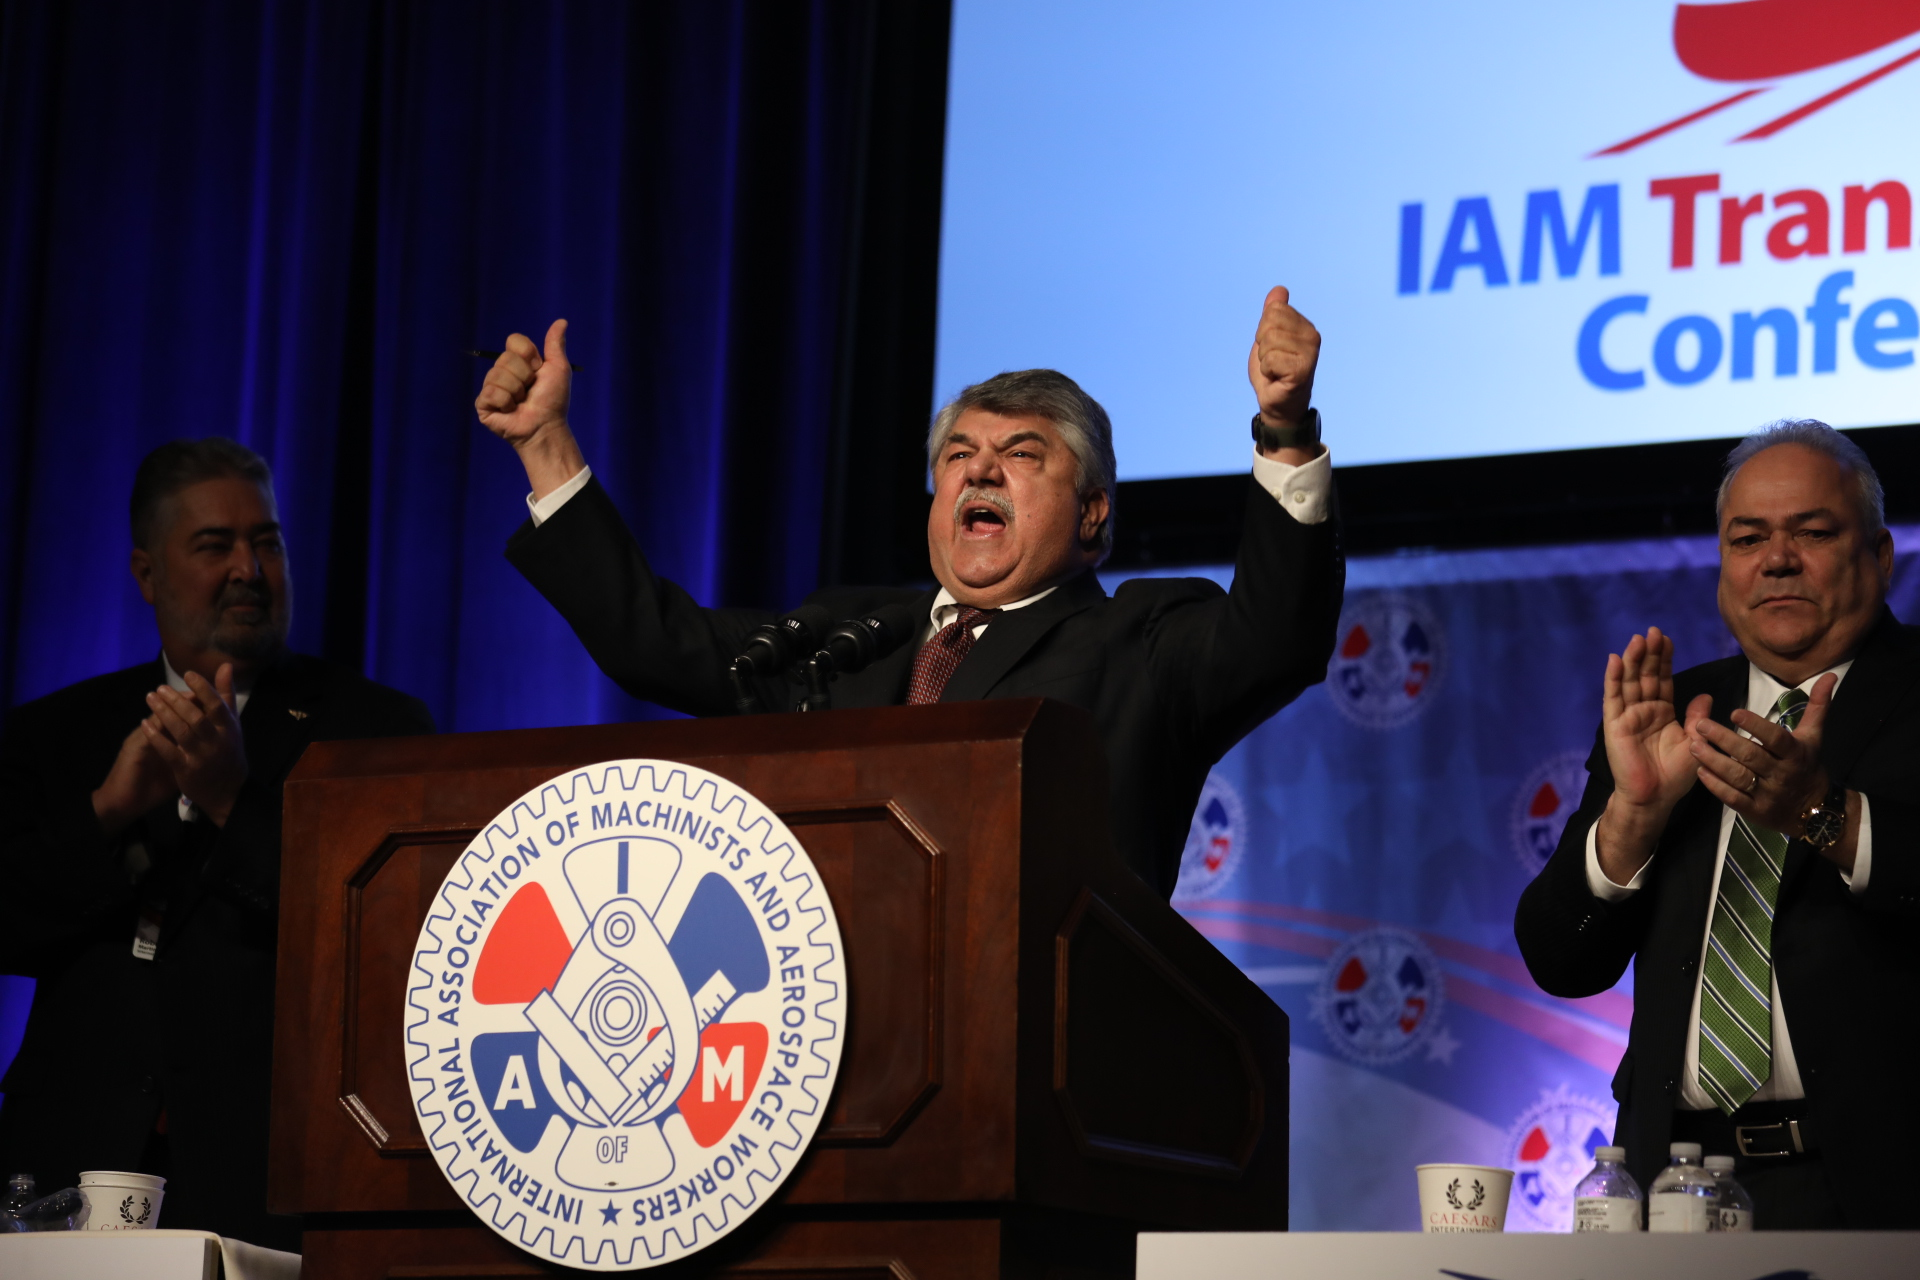 AFL-CIO President Richard Trumka fires up the IAM Transportation Conference.